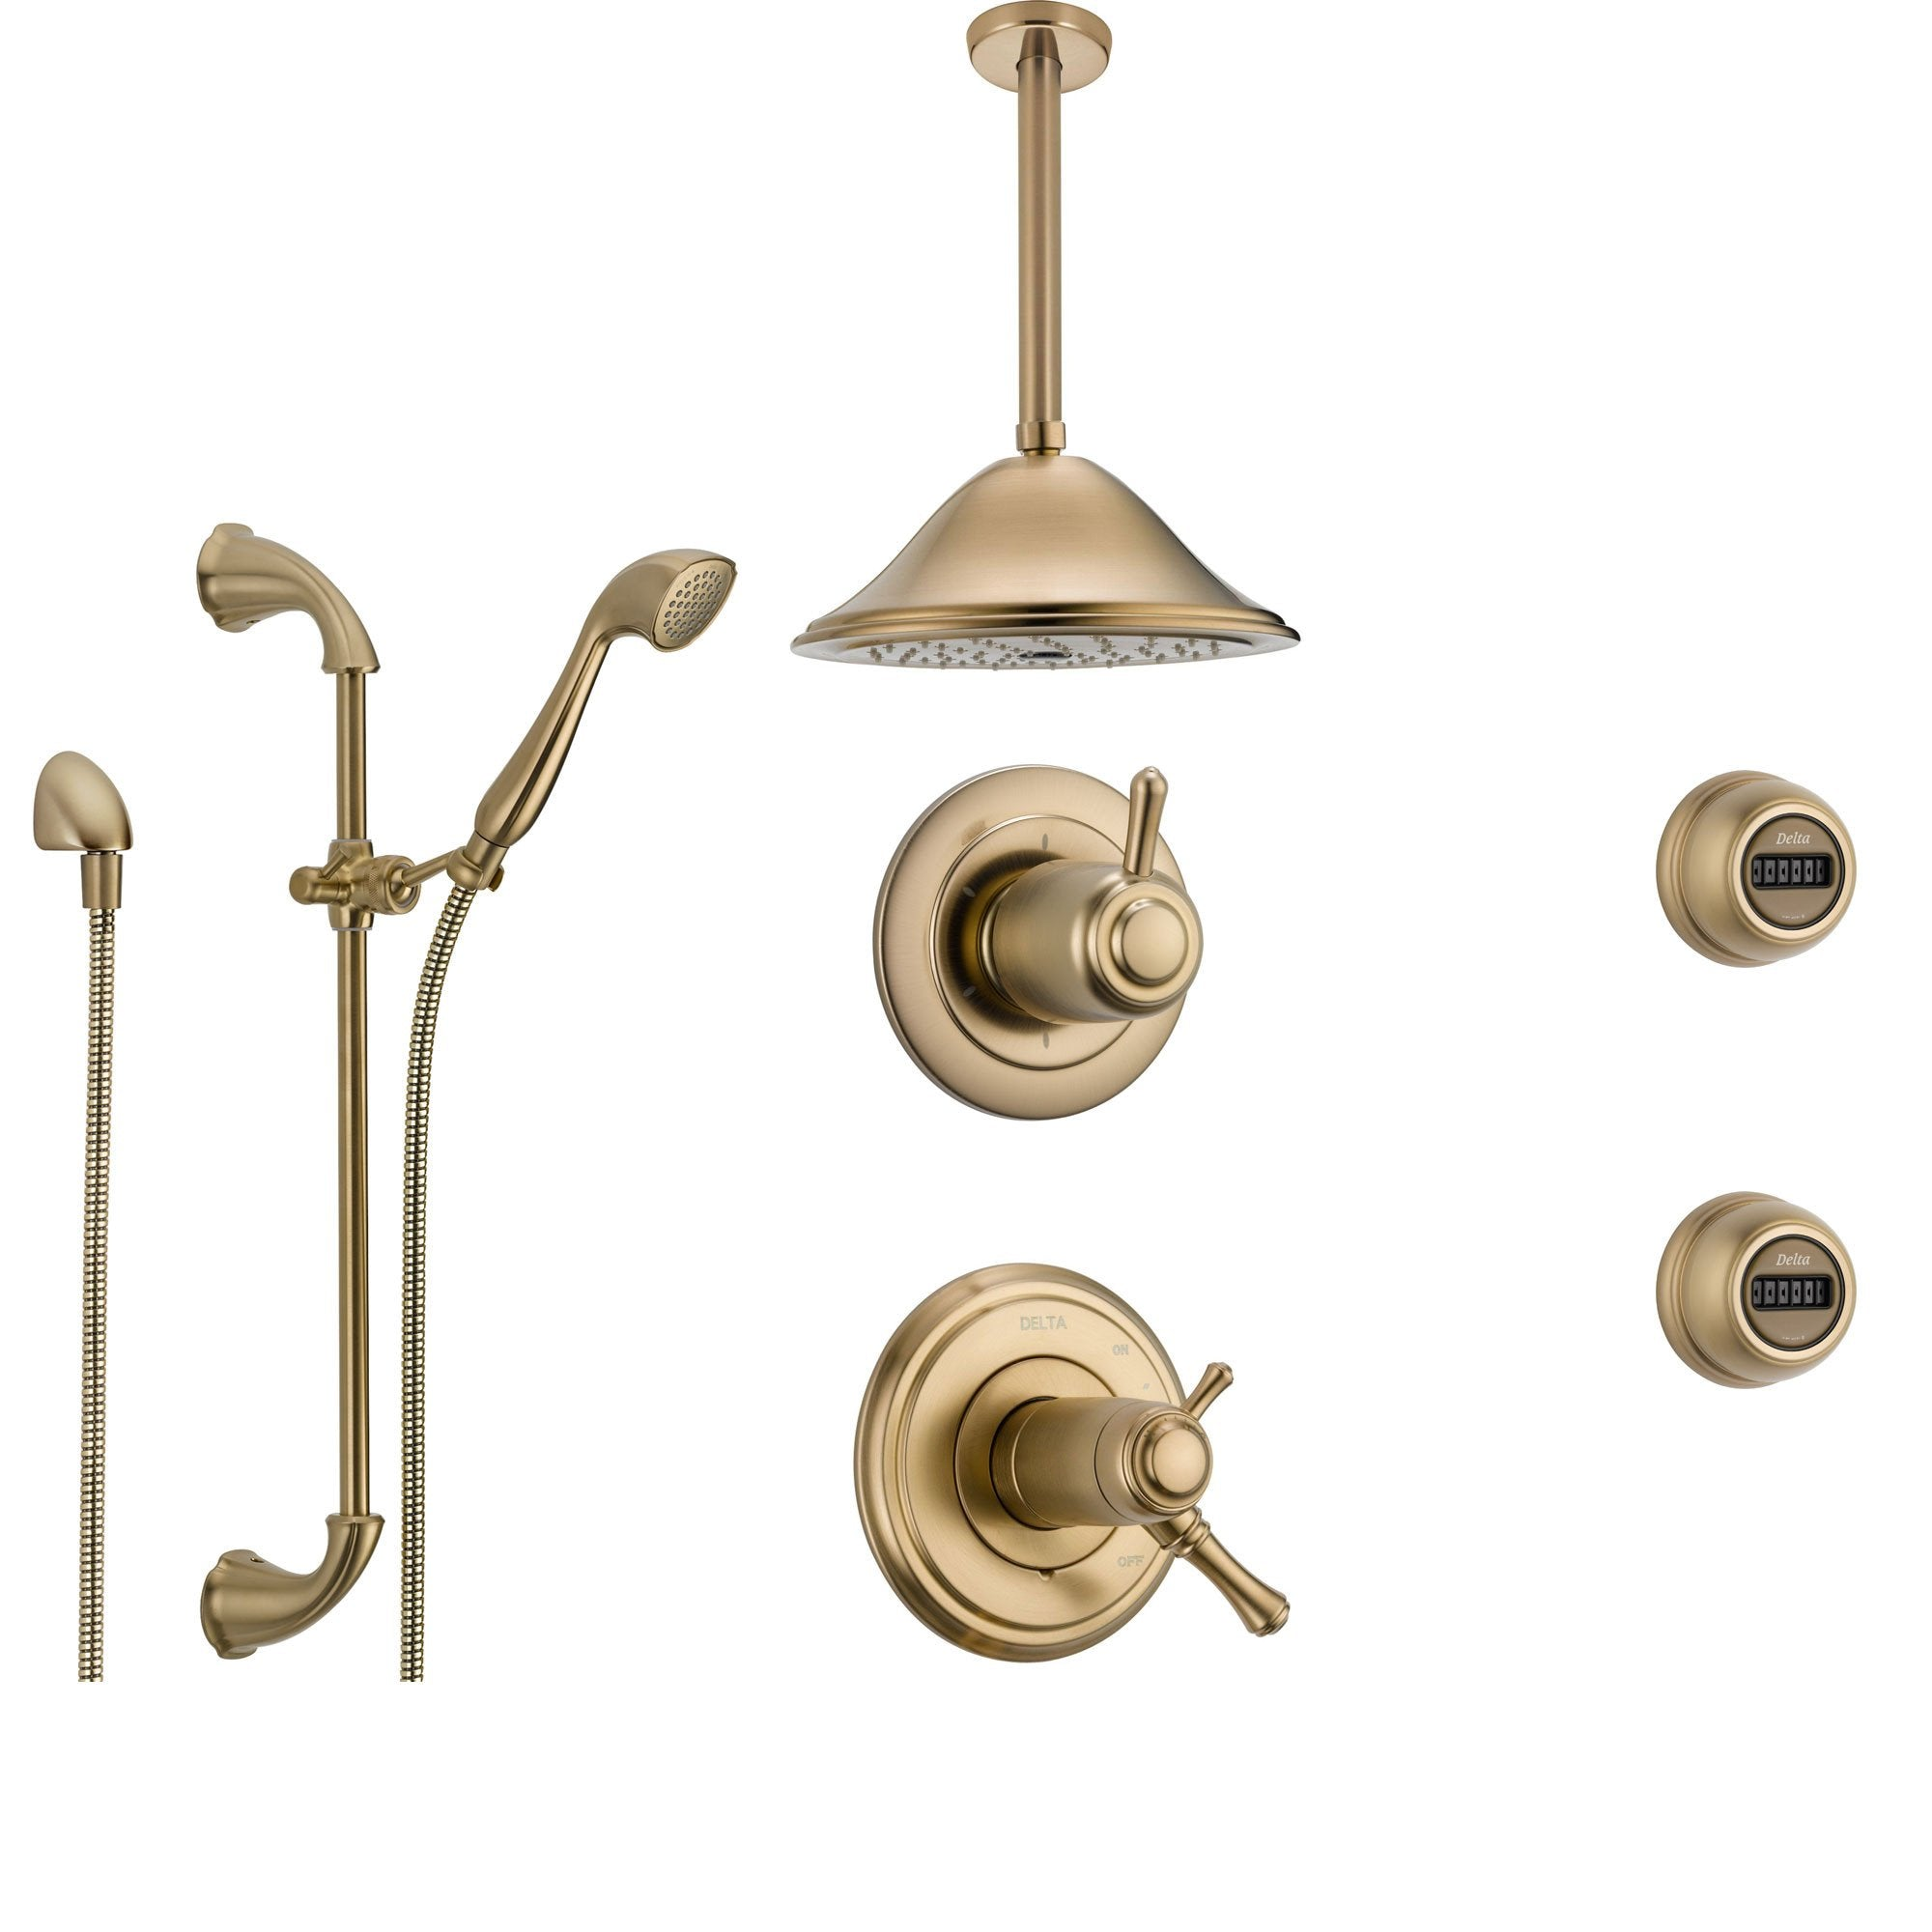 Delta Cassidy Champagne Bronze Shower System with Thermostatic Shower Handle, 6-setting Diverter, Ceiling Mount Large Rain Showerhead, Handheld Spray, and 2 Body Sprays SS17T9795CZ